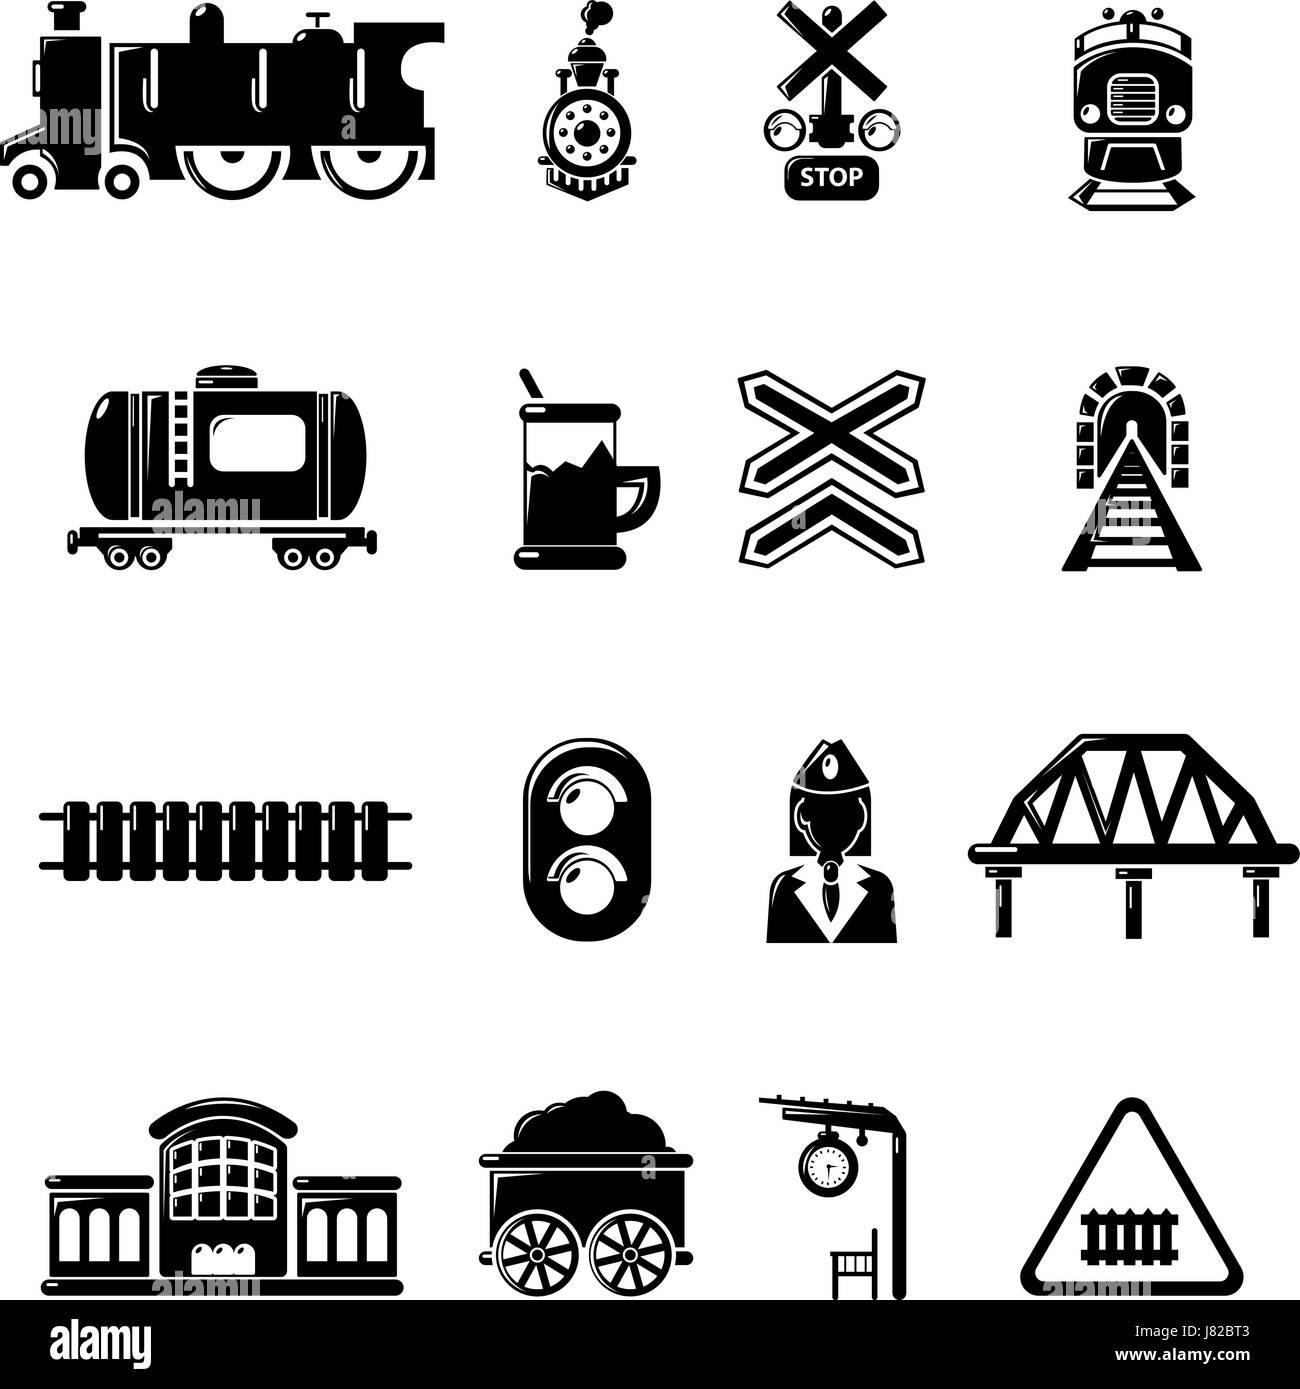 Train railroad icons set, simple style - Stock Vector